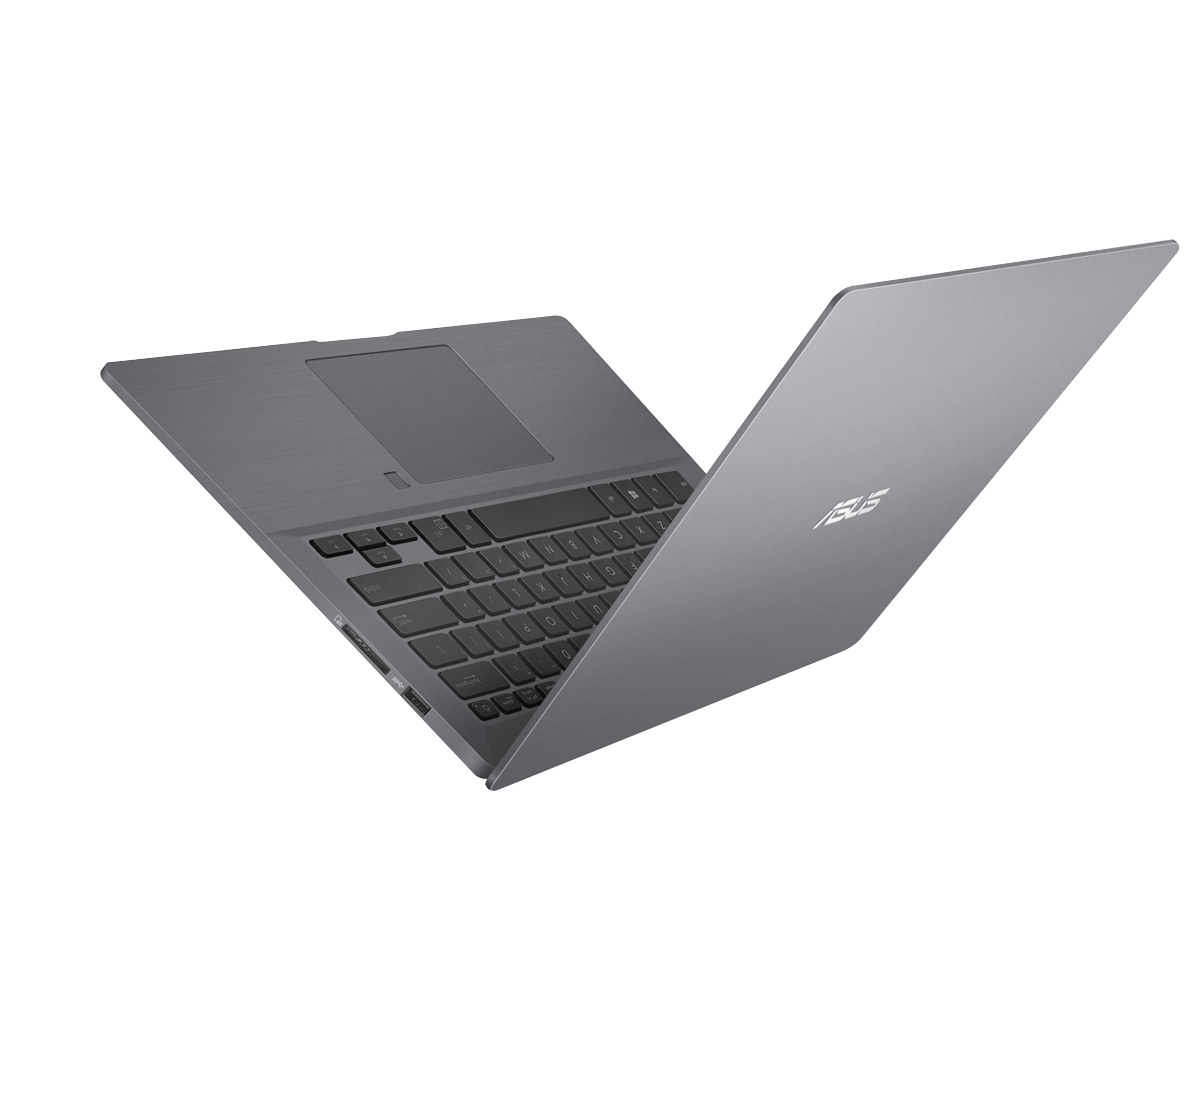 ExpertBook P5 P5440|For Work|Laptops |ASUS Global